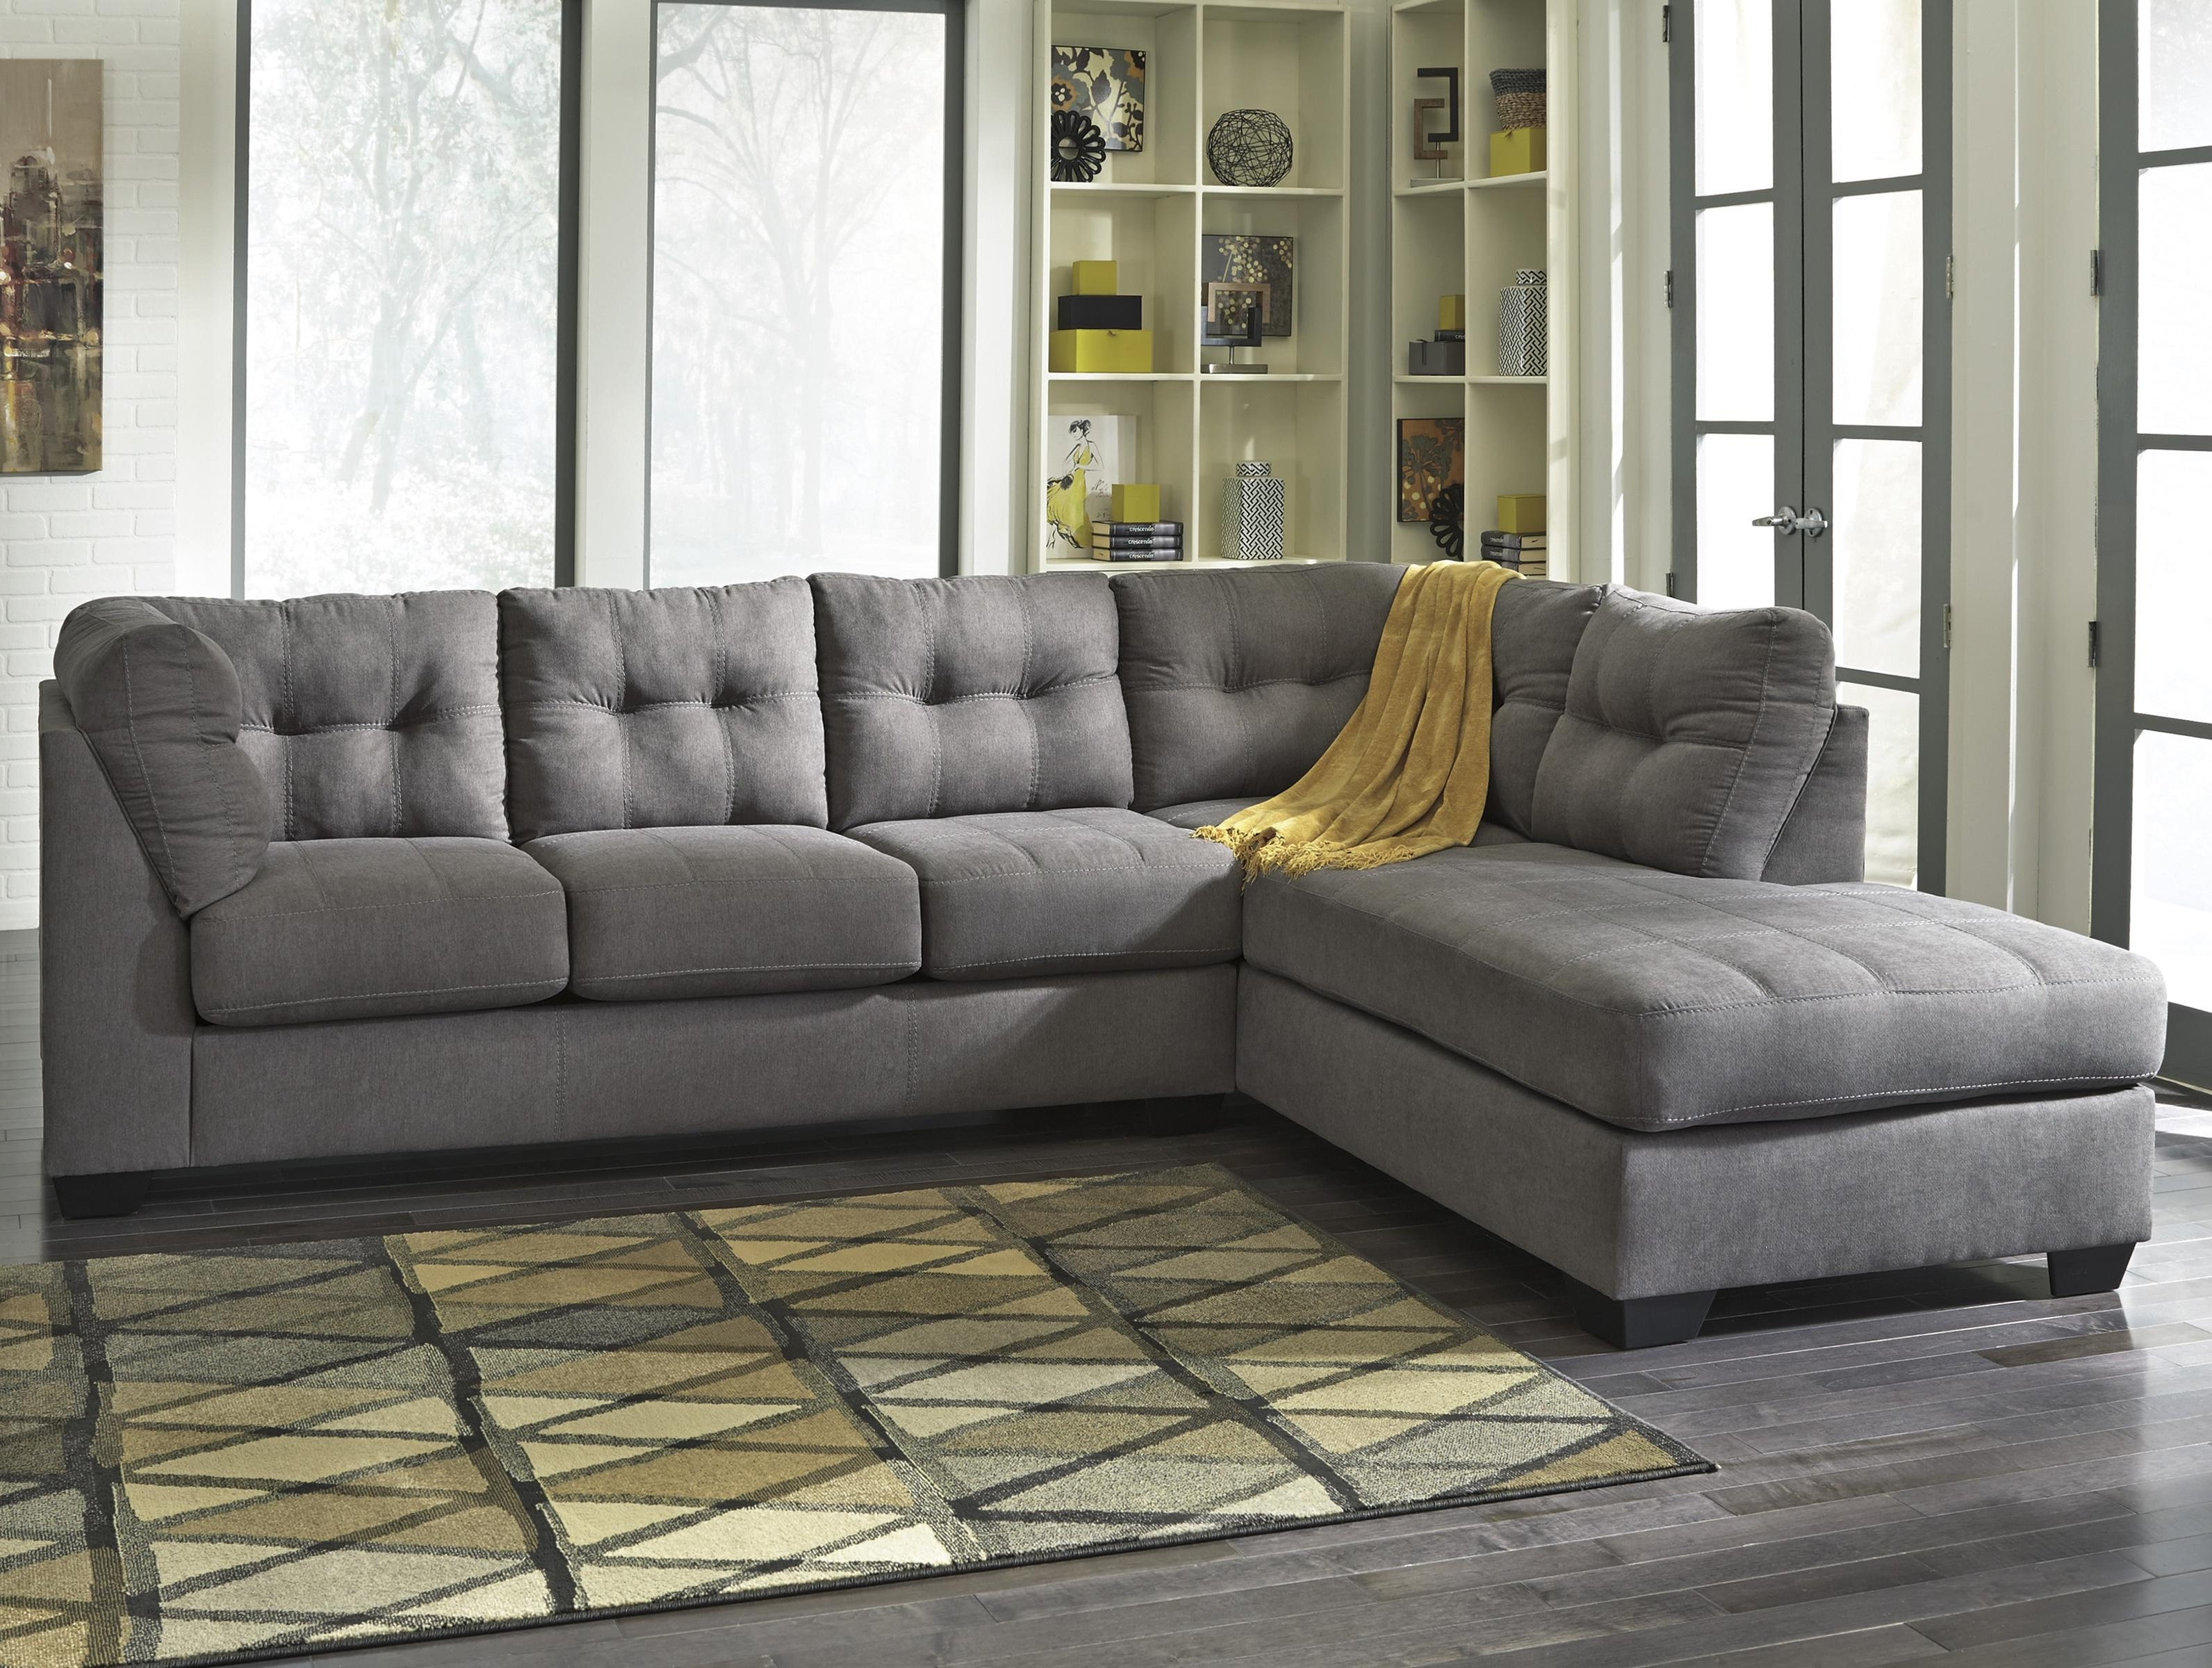 Benchcraft Maier – Charcoal 2 Piece Sectional W/ Sleeper Sofa With Regard To Favorite 2 Piece Sectional Sofas With Chaise (View 3 of 15)